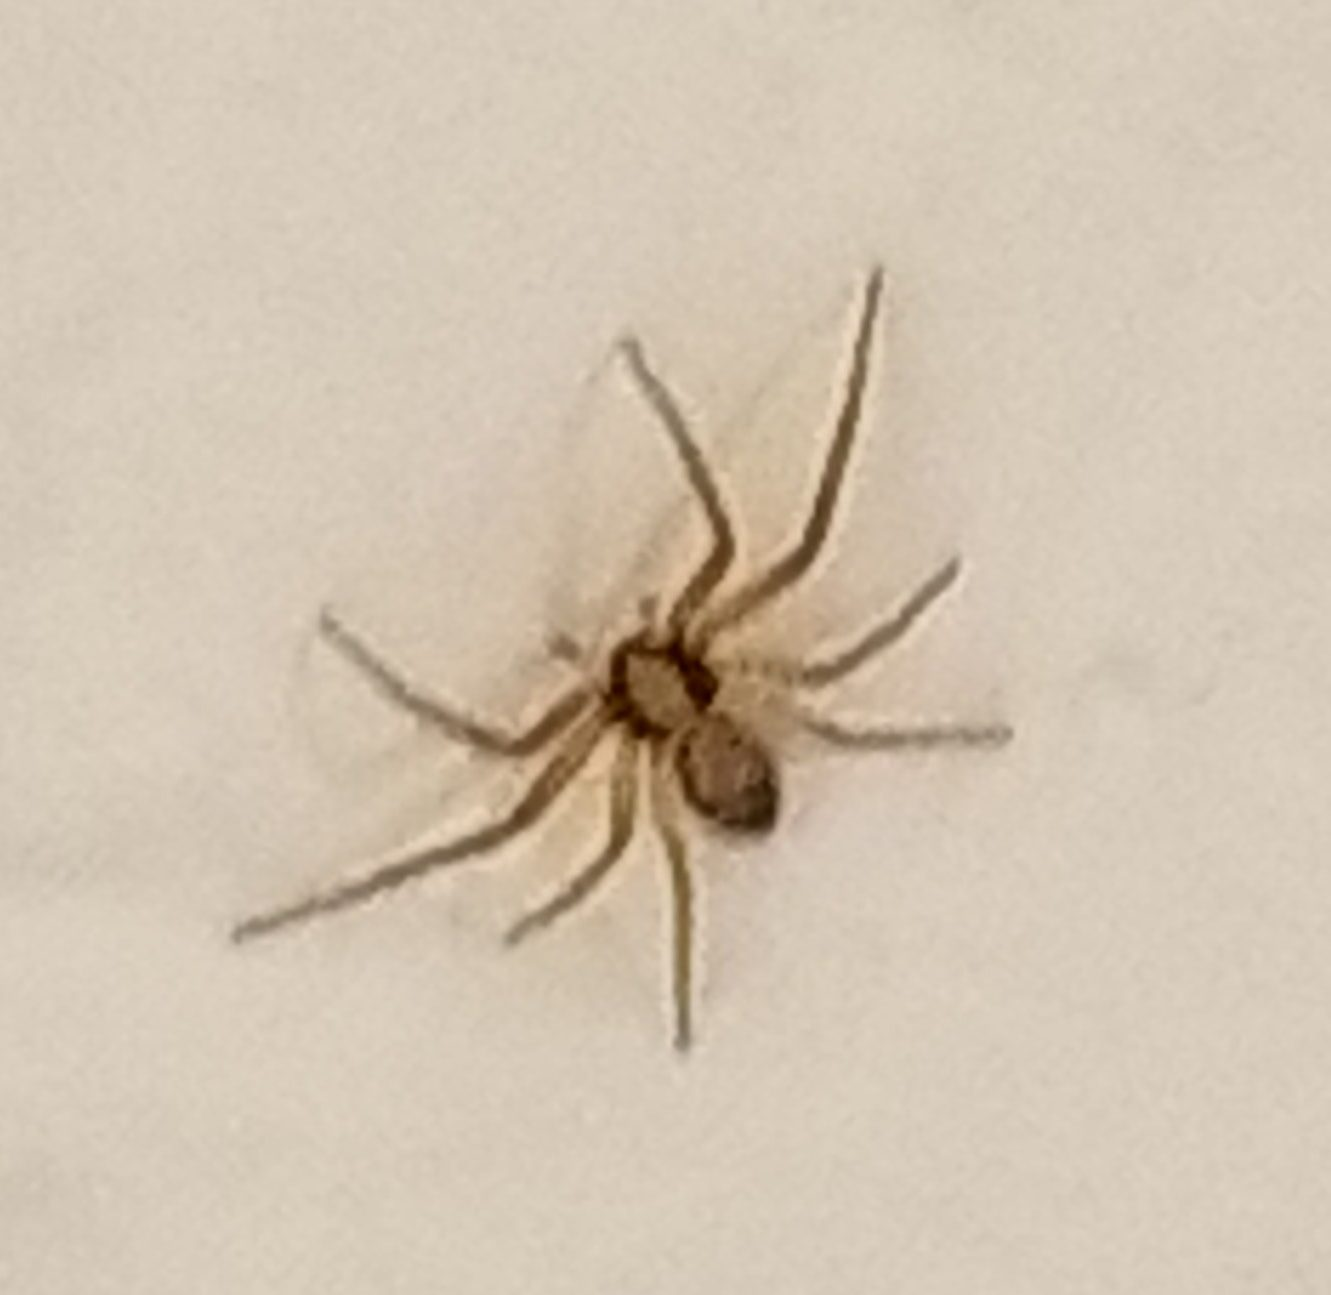 Picture of Philodromus - Dorsal